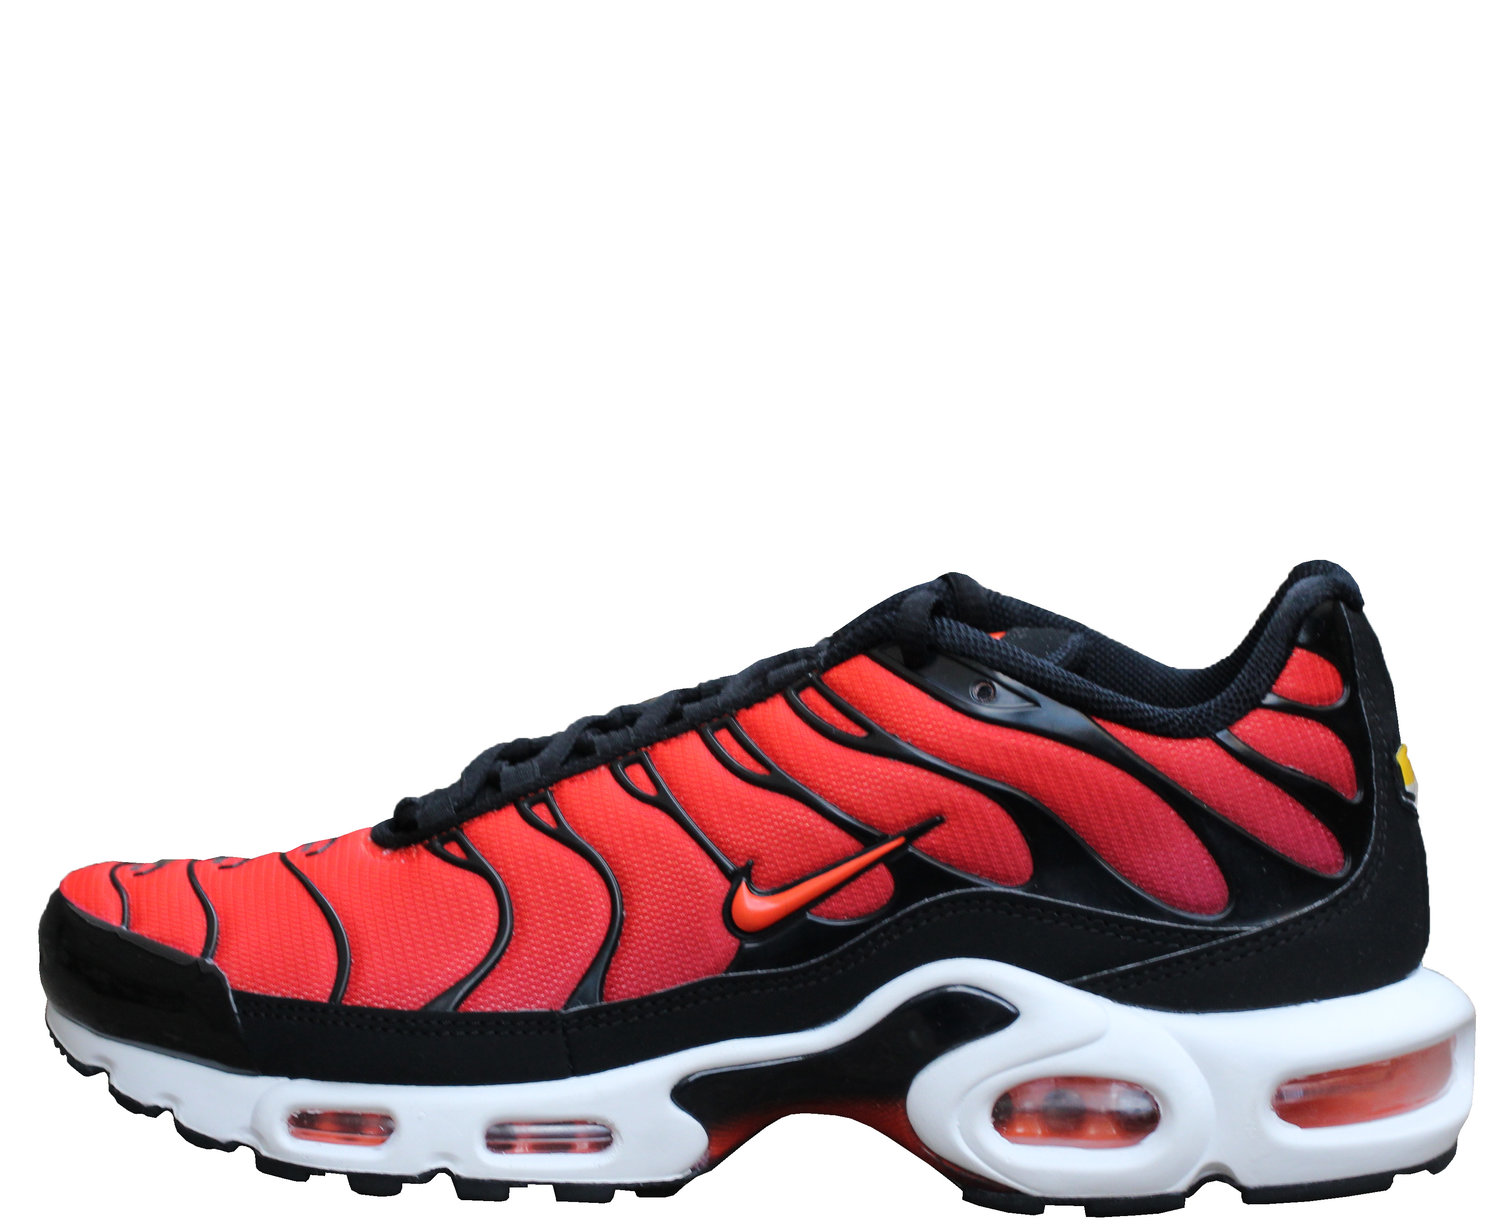 Nike Air Max Plus Black Team Orange Team Red Size 8 5 Ds Roots